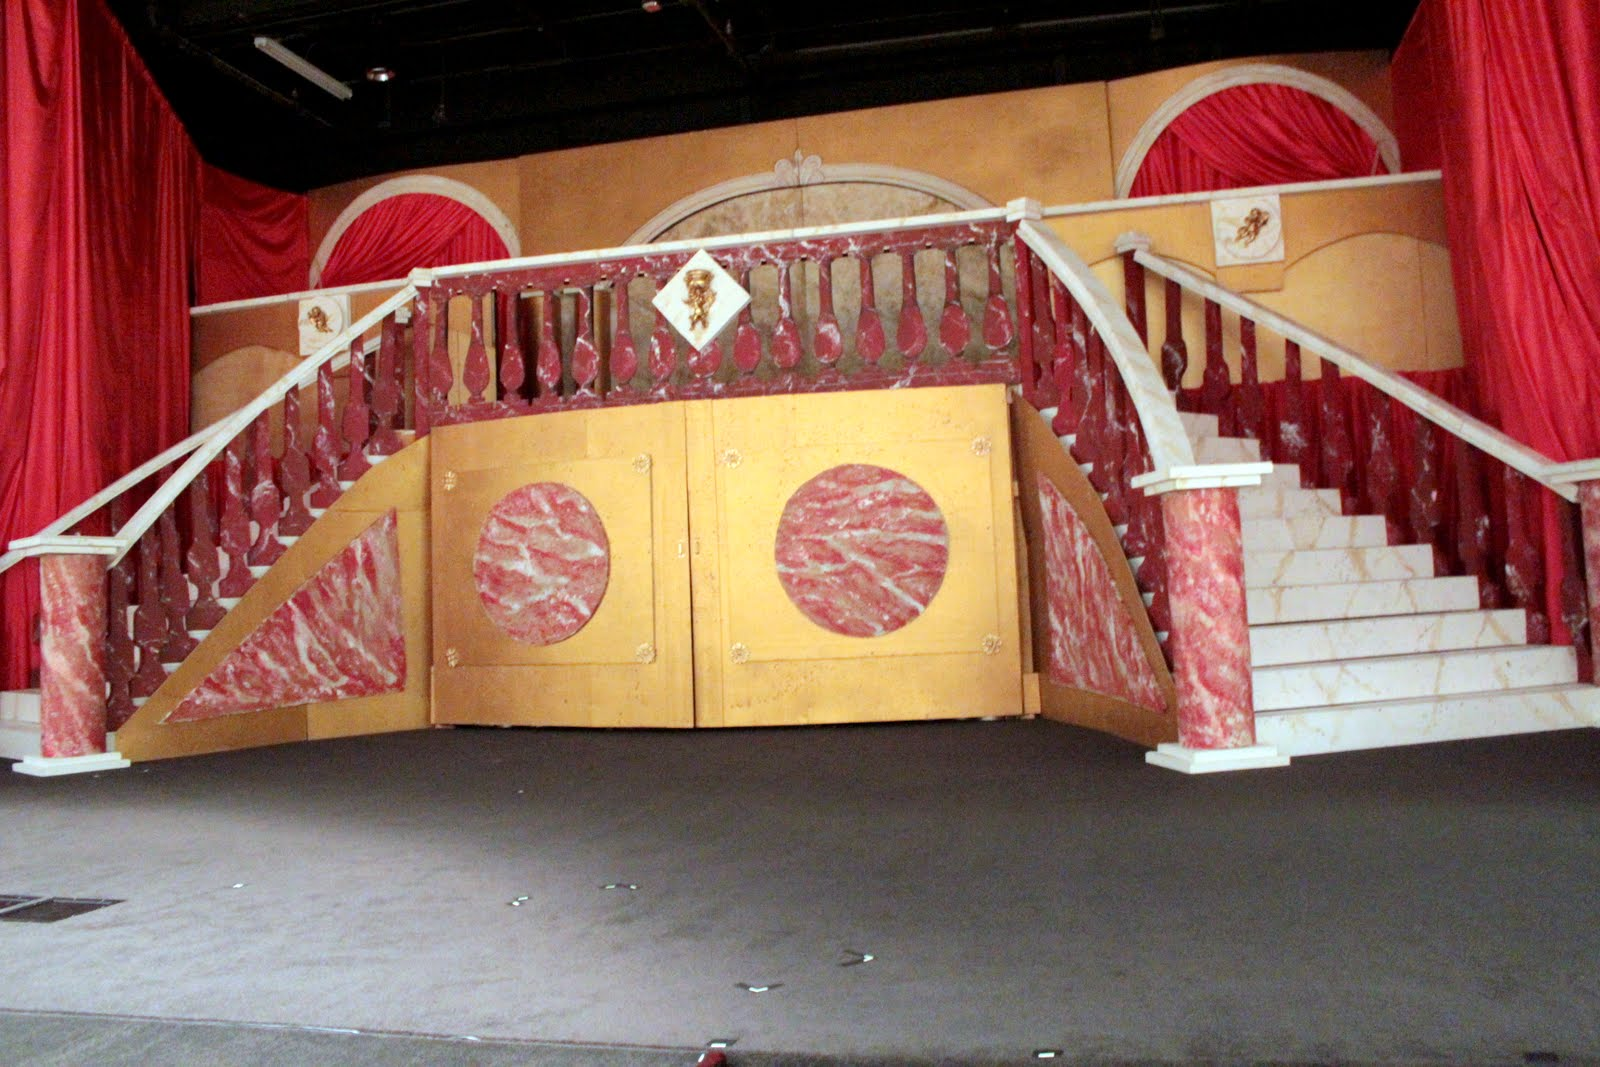 Curved Stairs Art Of Theatre Tags Custom Stair Builder Design Diagram Now A Case Is Really Nothing More Than Just Cutting Boards From Plywood And Then Attaching Them To Your Stringers